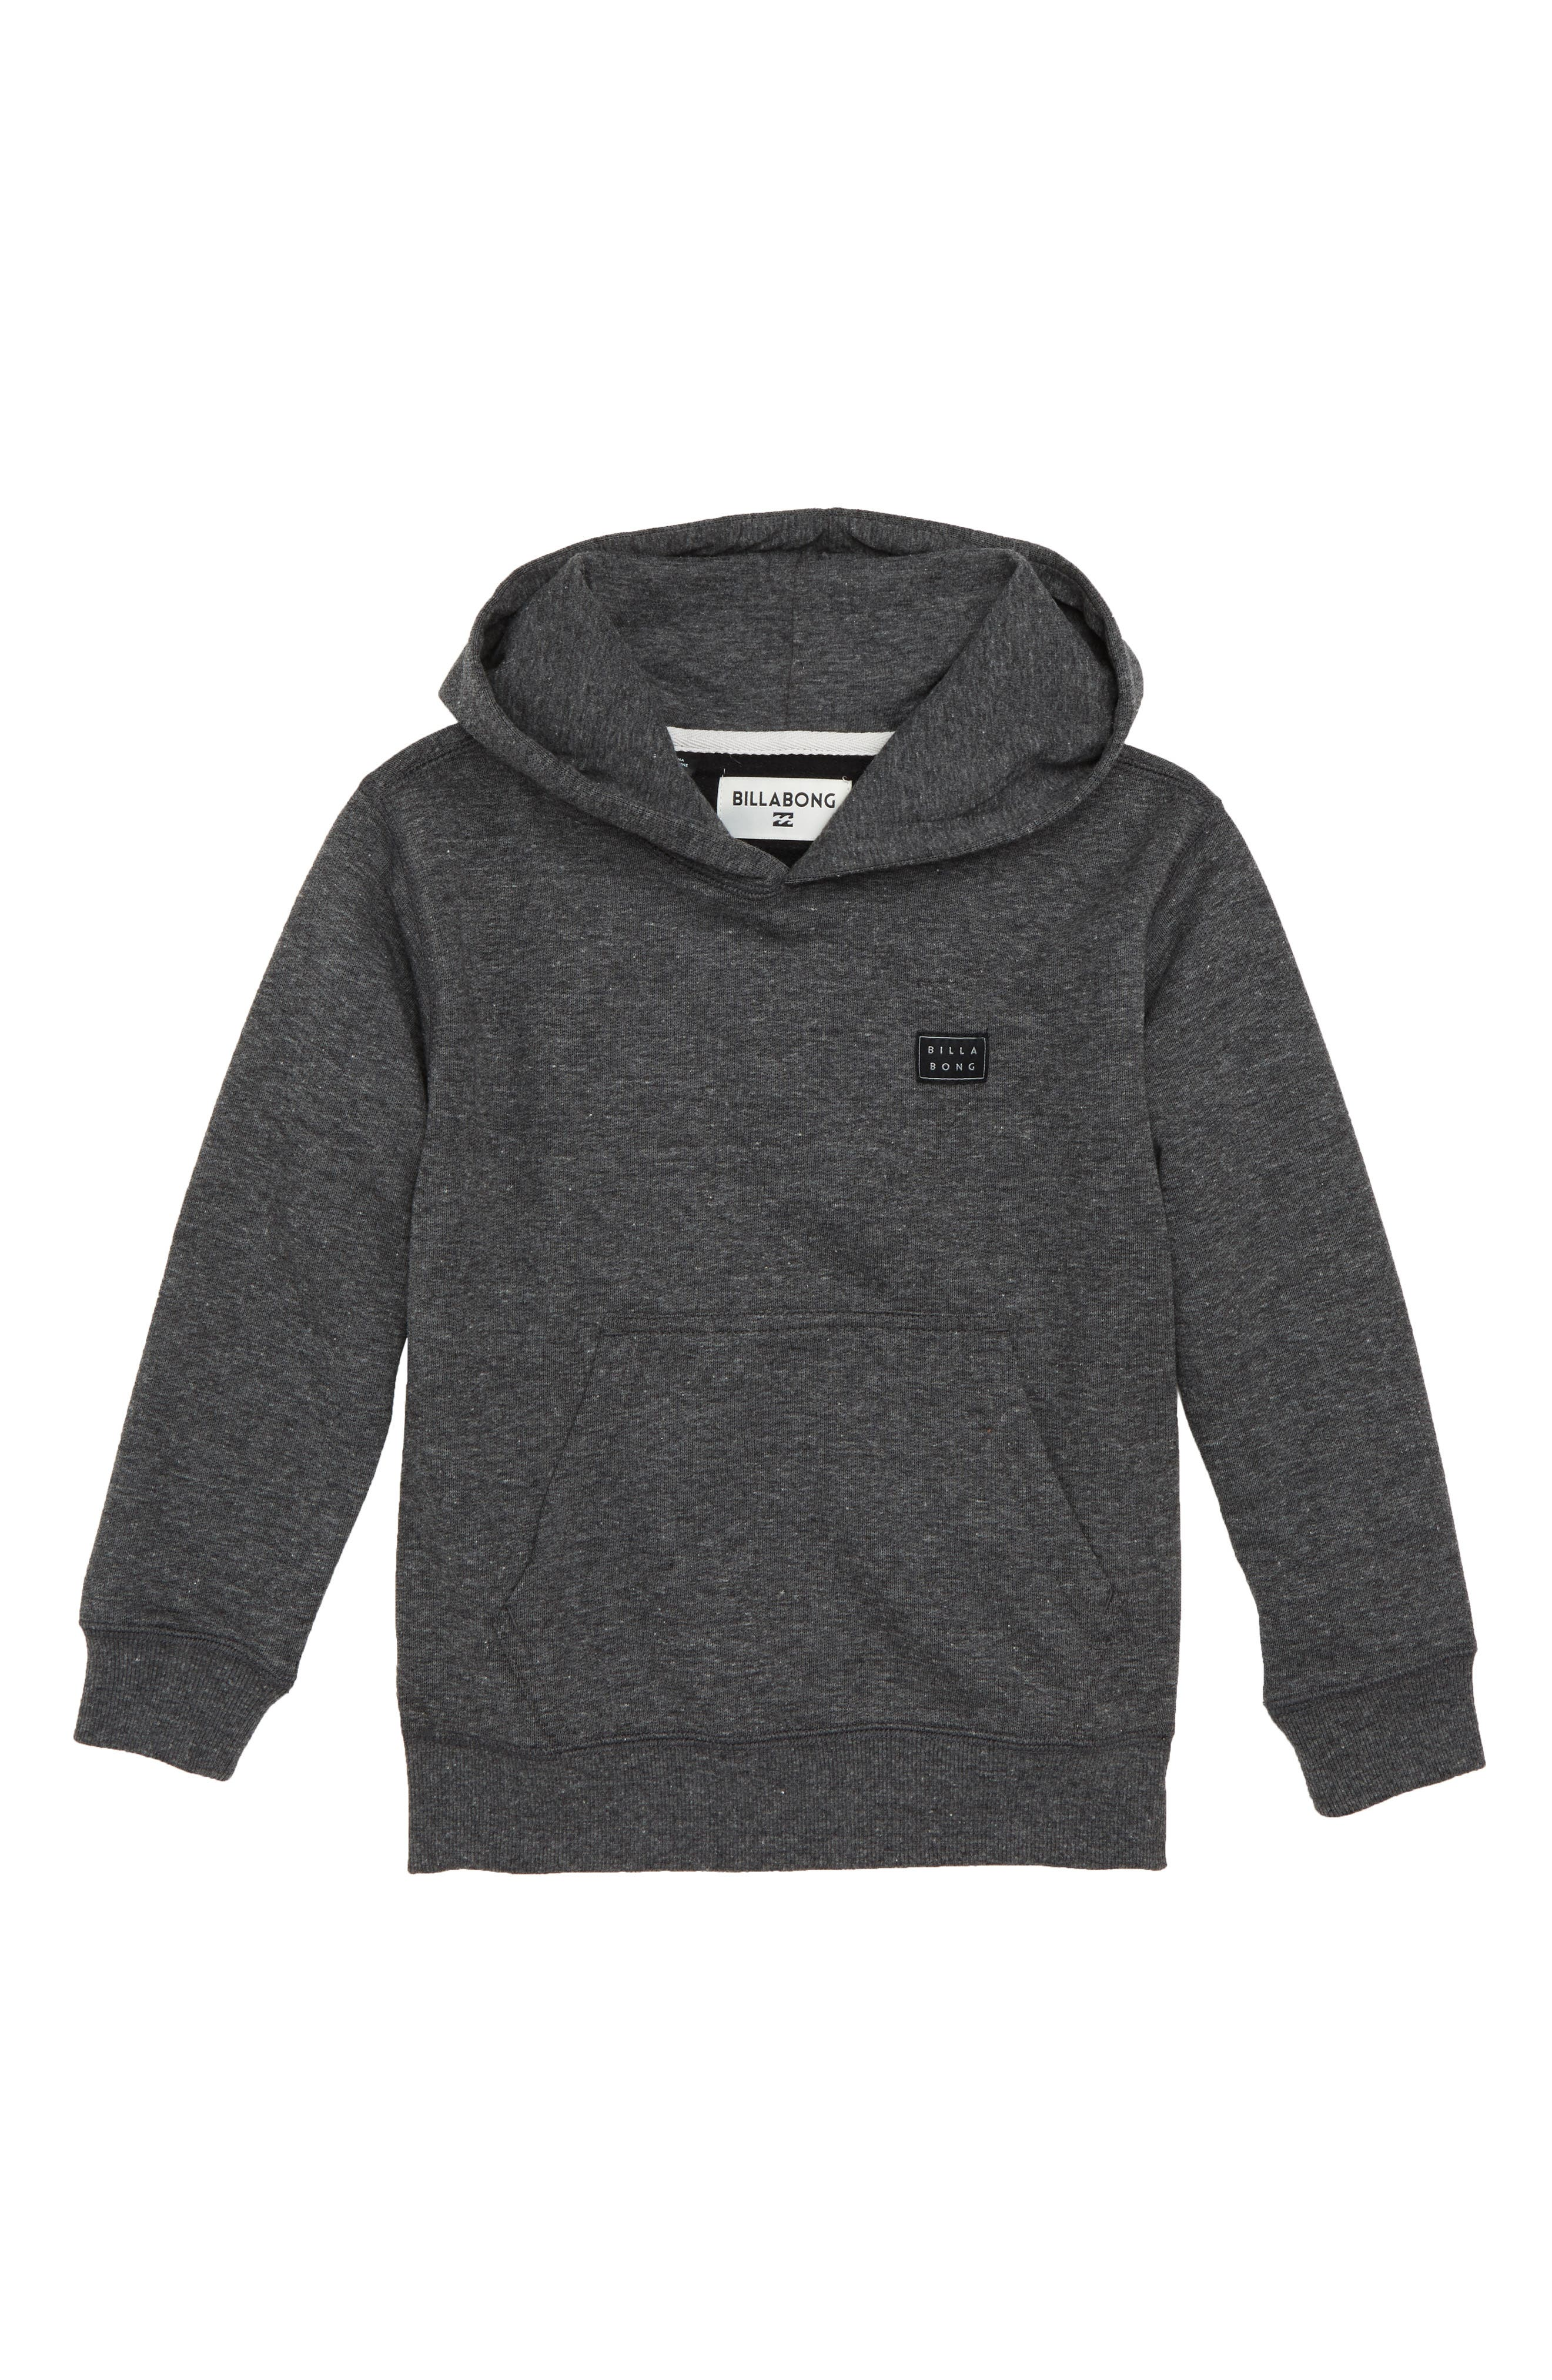 All Day Hoodie,                             Main thumbnail 1, color,                             020